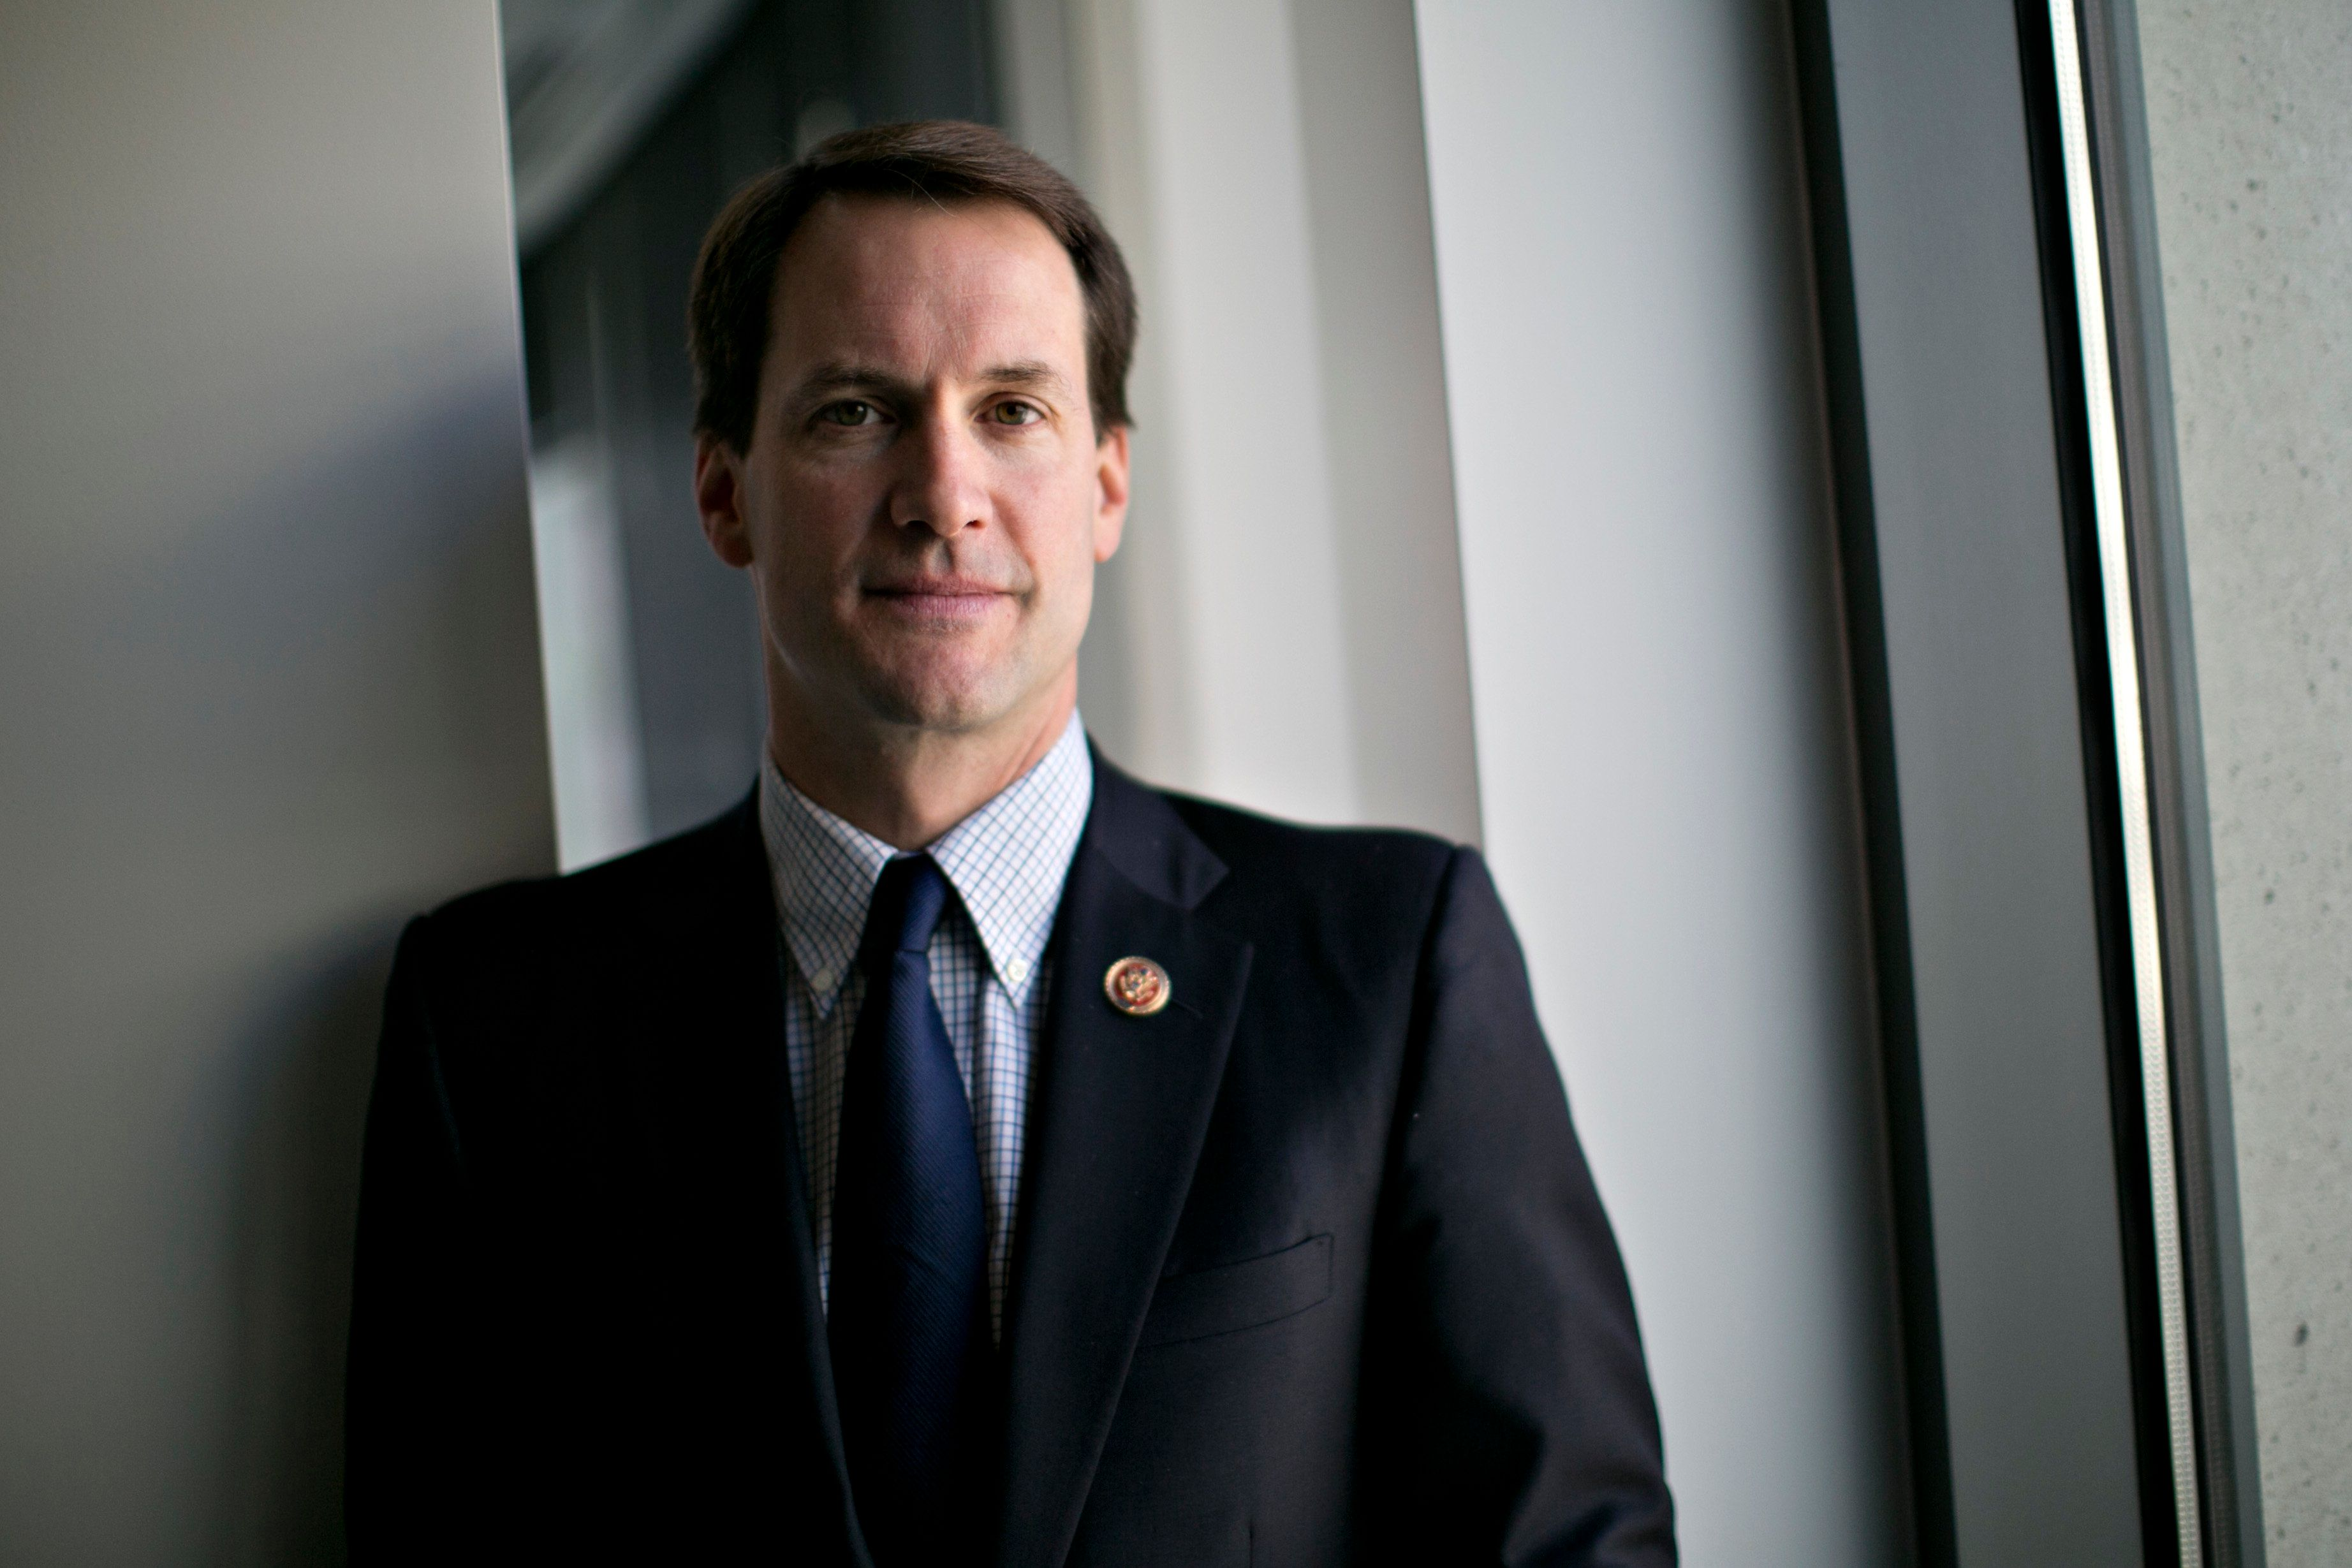 Rep. Jim Himes (D-Conn.) is frustrated that Congress isn't doing more to preventgun